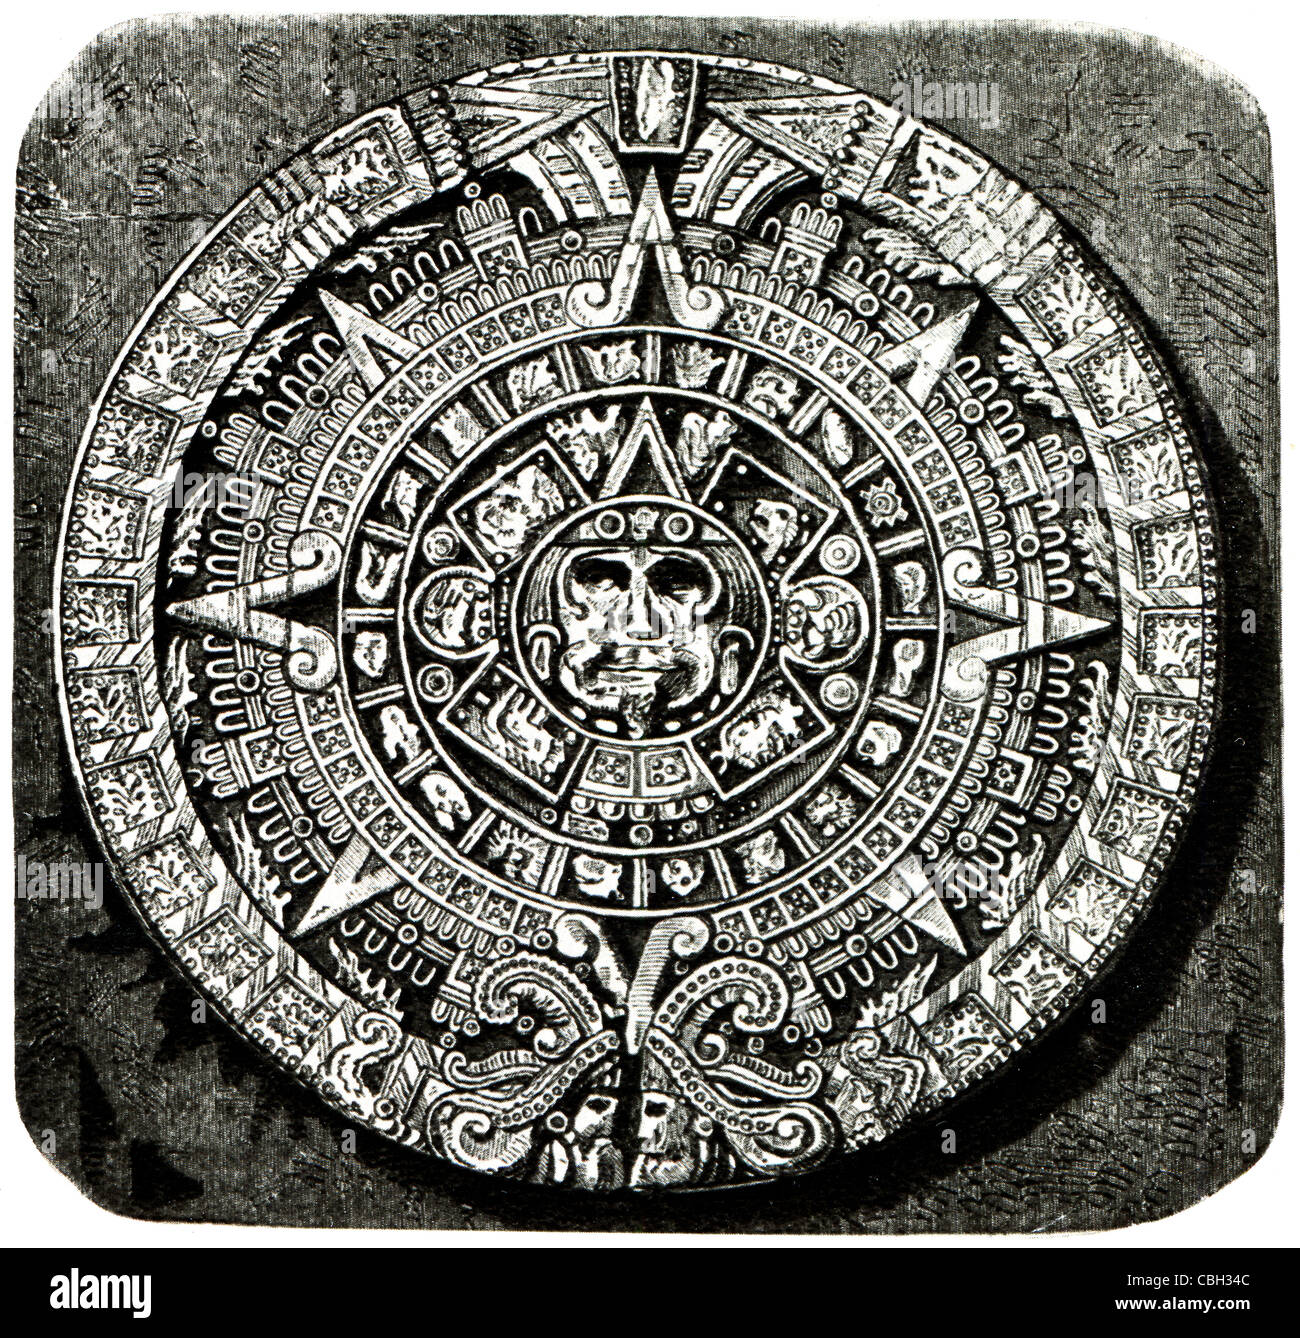 maya calendar stock photos u0026 maya calendar stock images alamy